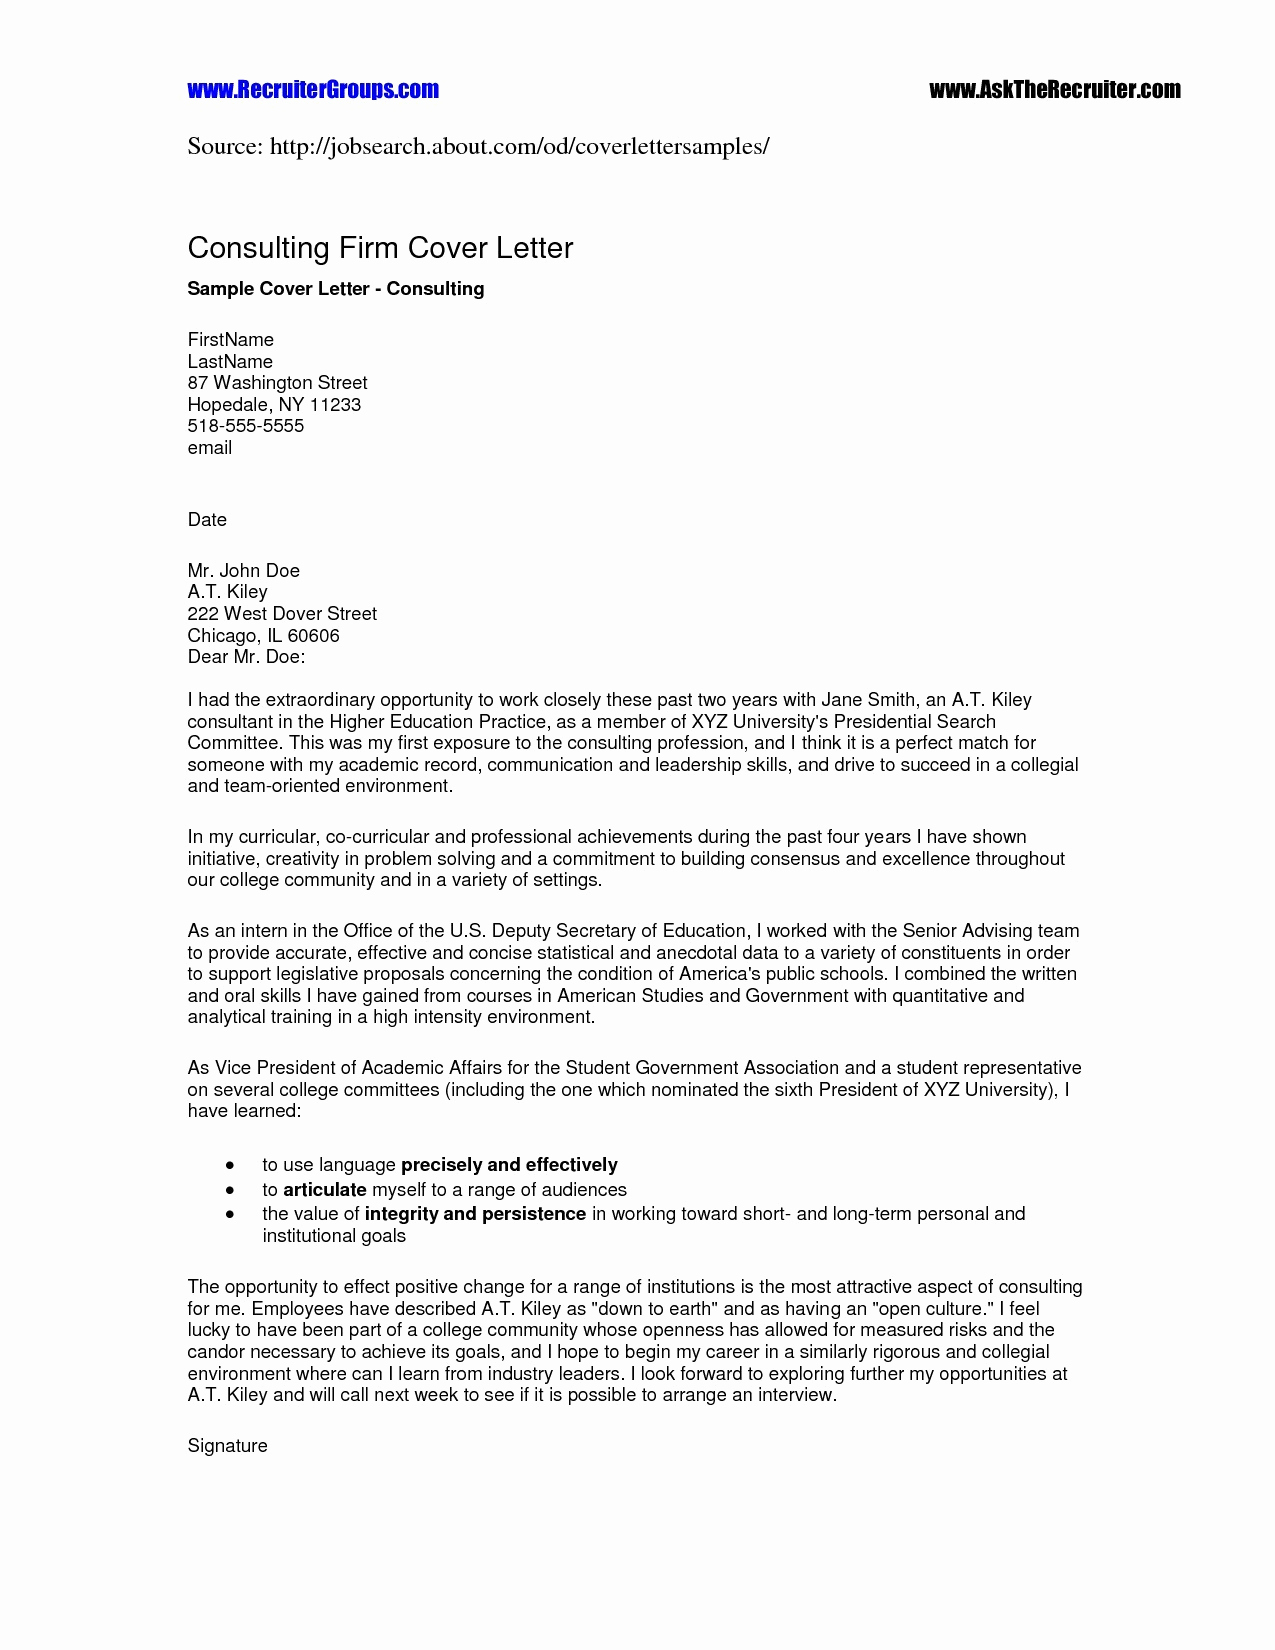 Transmittal Cover Letter Template - Transmittal form Sample Template Beautiful Cover Letter Template for